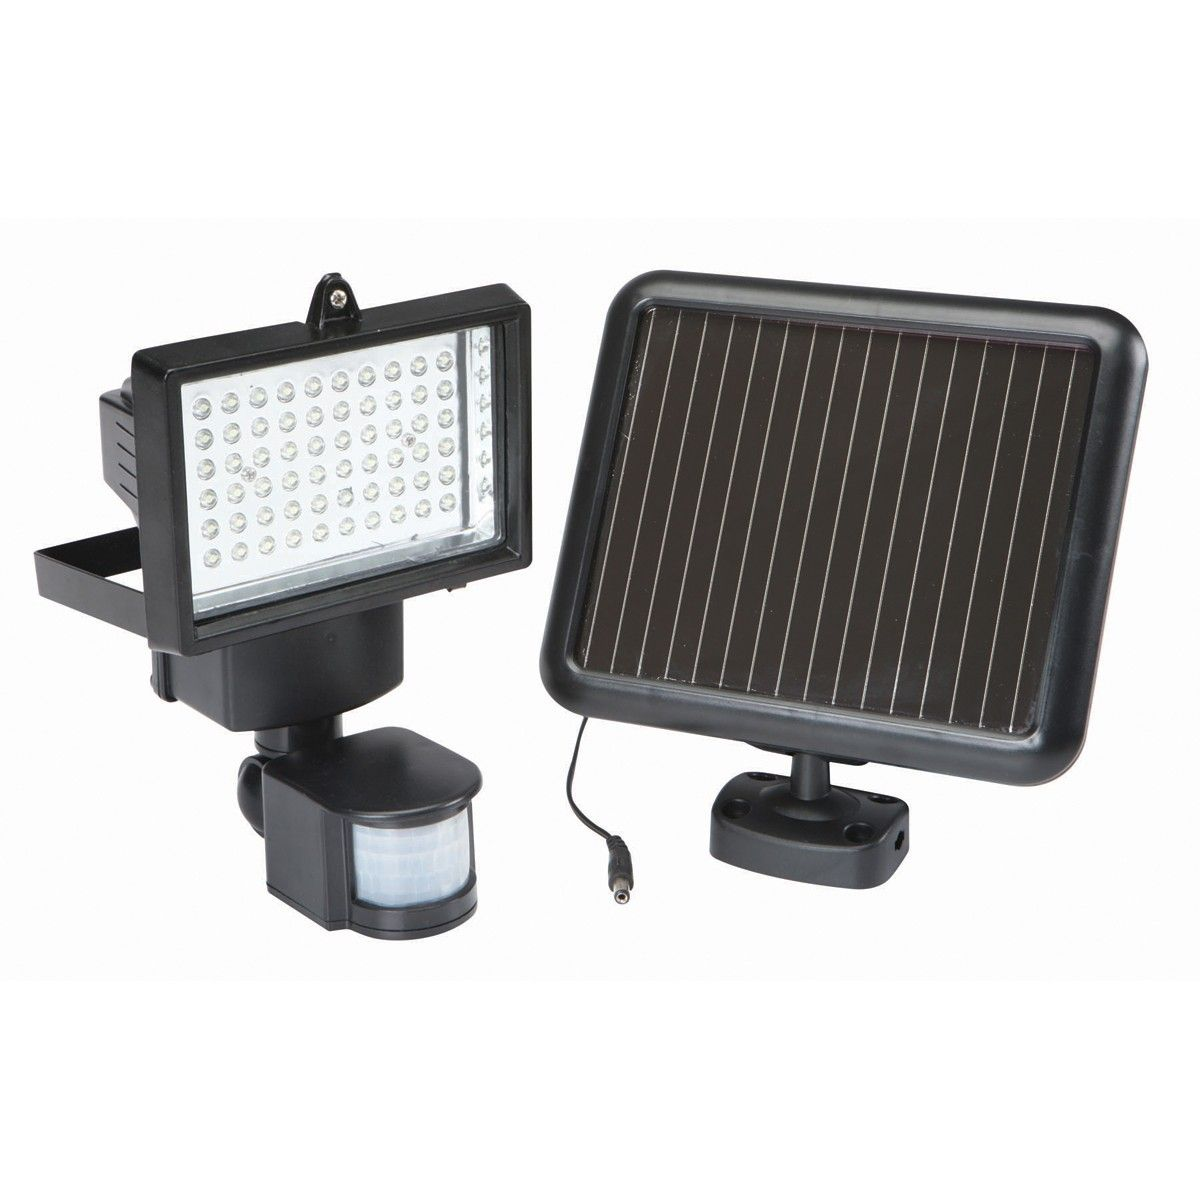 Flood Light Security Camera Classy 60 Led Solar Security Light  Solar Security Light Solar And Lights Inspiration